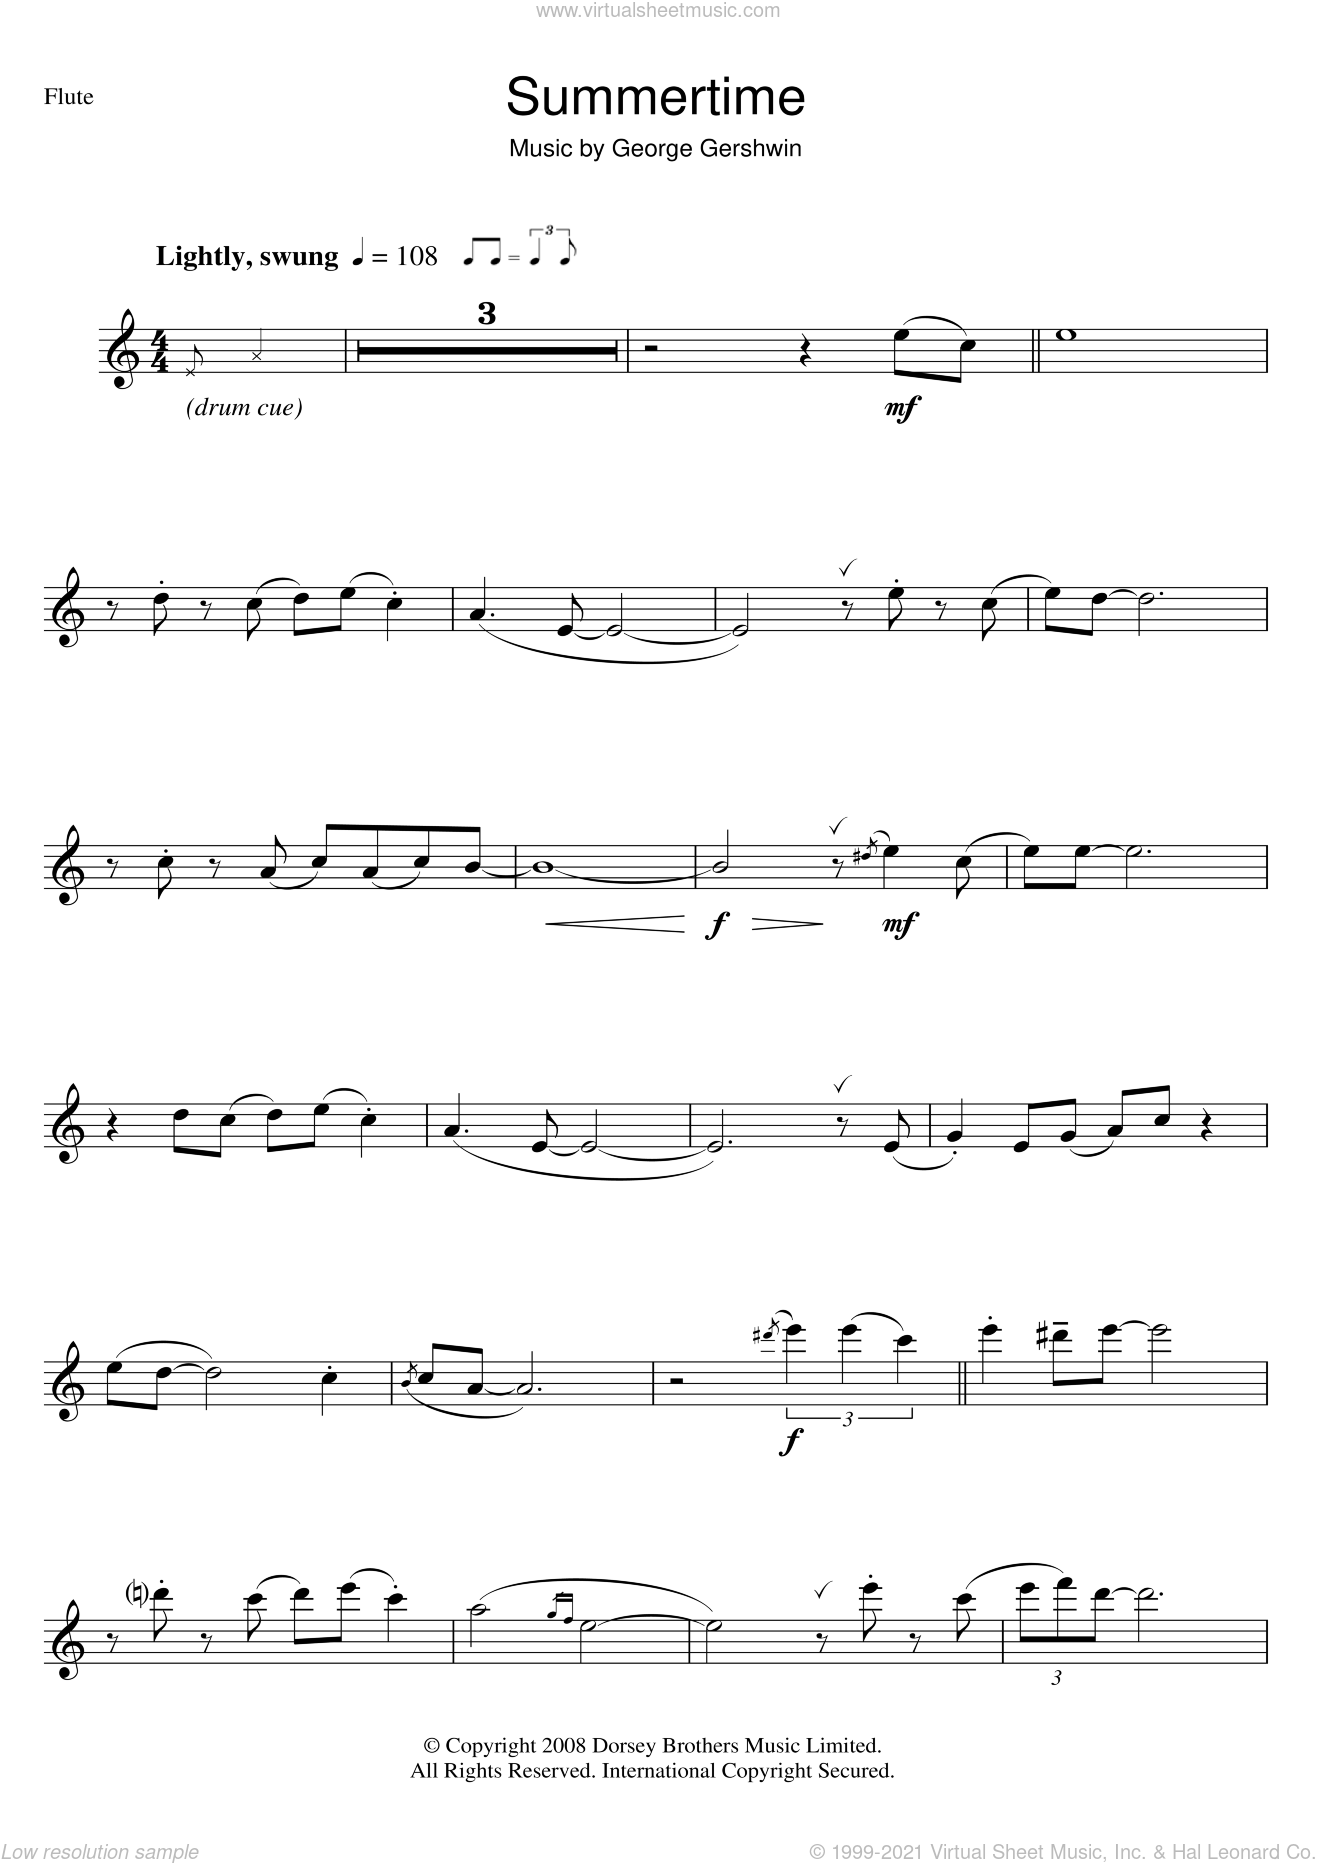 Summertime sheet music for flute solo by George Gershwin, intermediate skill level